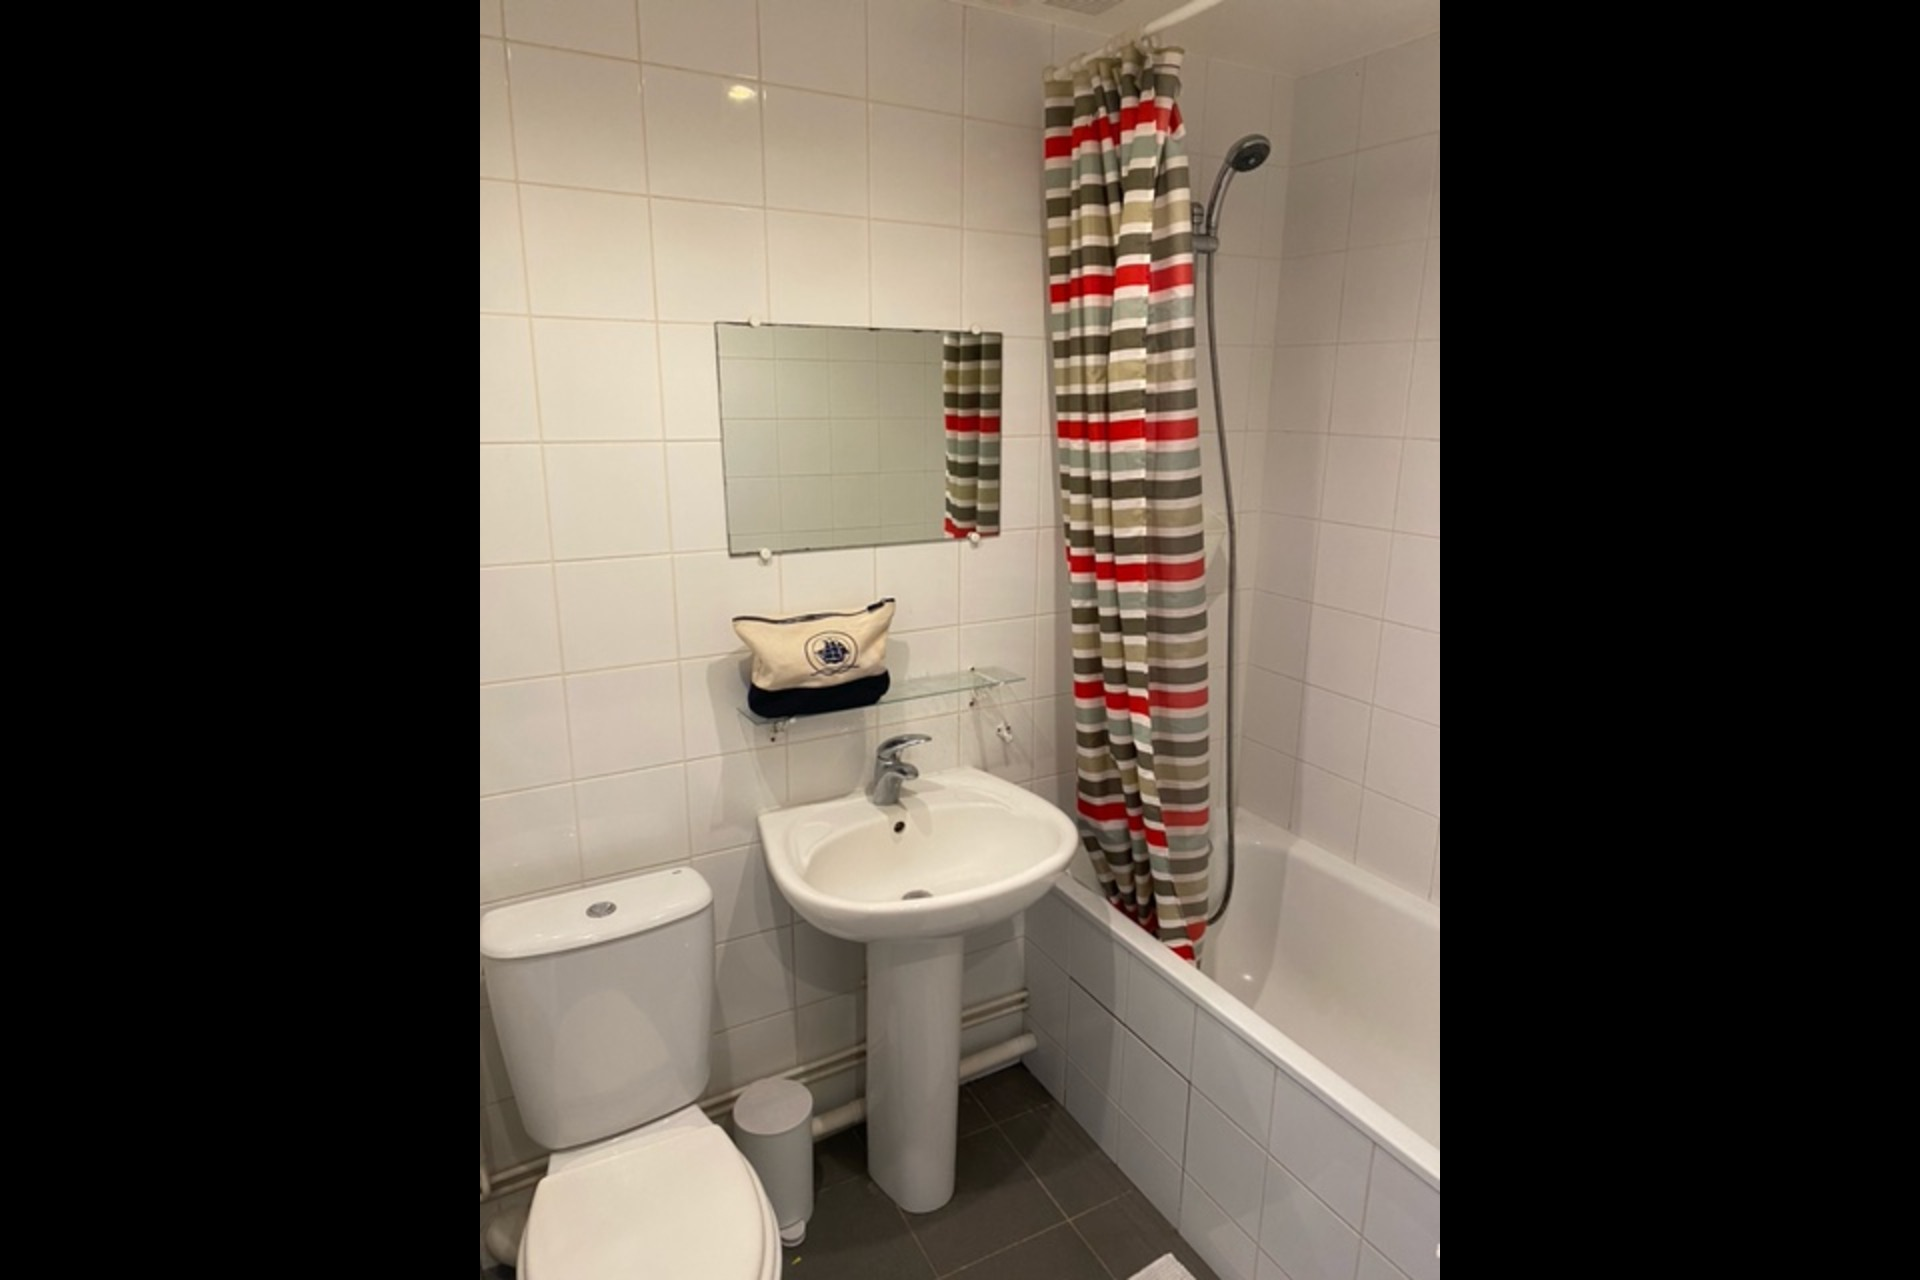 image 2 - Apartment For rent chambourcy - 2 rooms